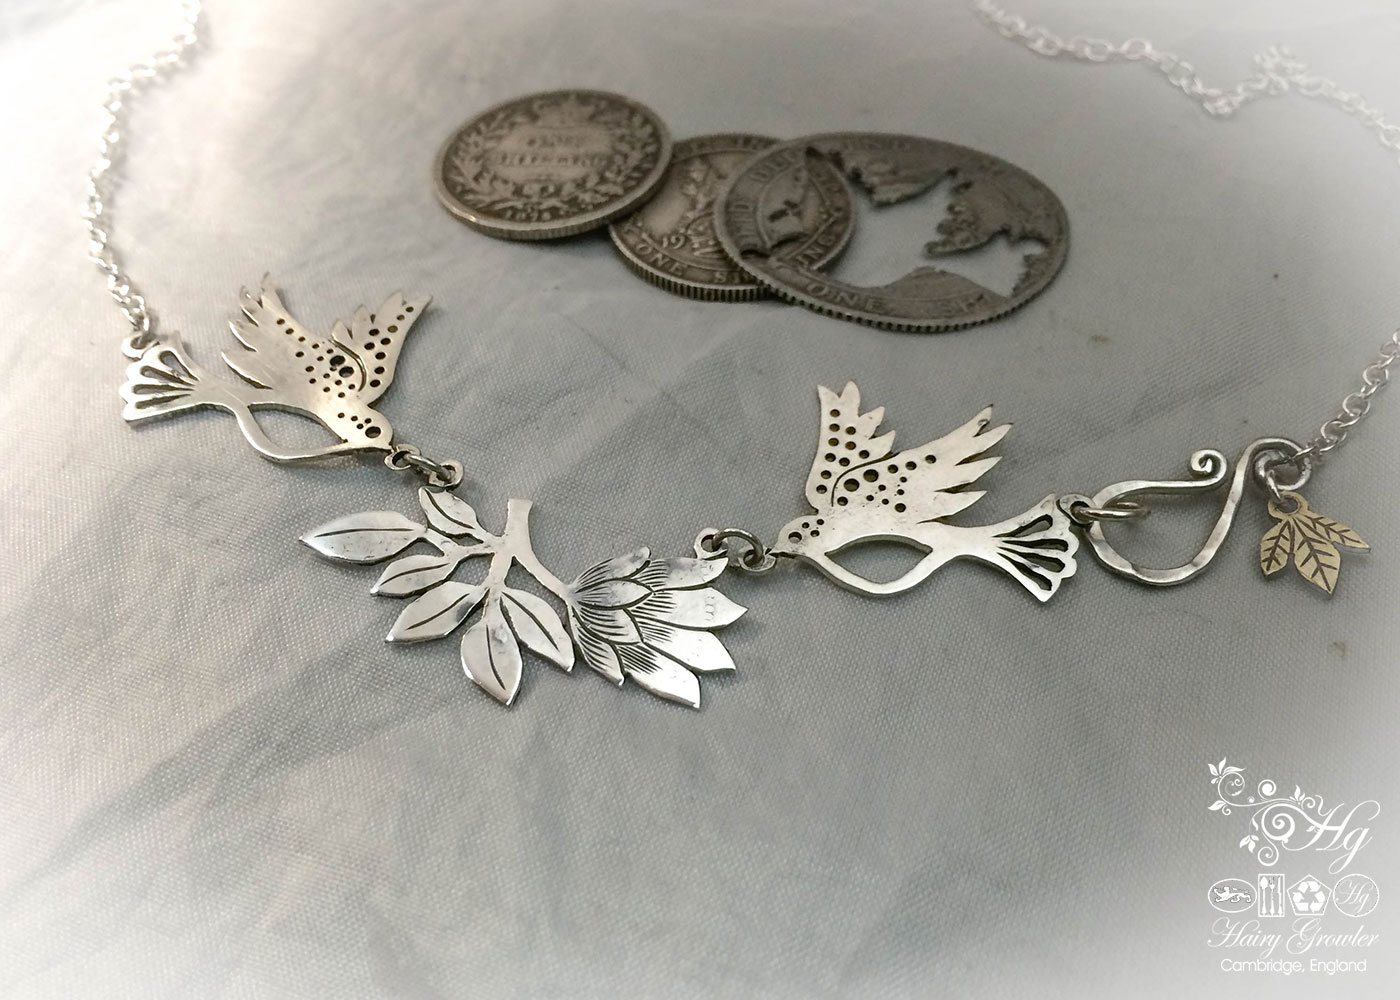 Hand made and repurposed sterling silver beautiful sparkling doves and lotus flower necklace made from silver shillings